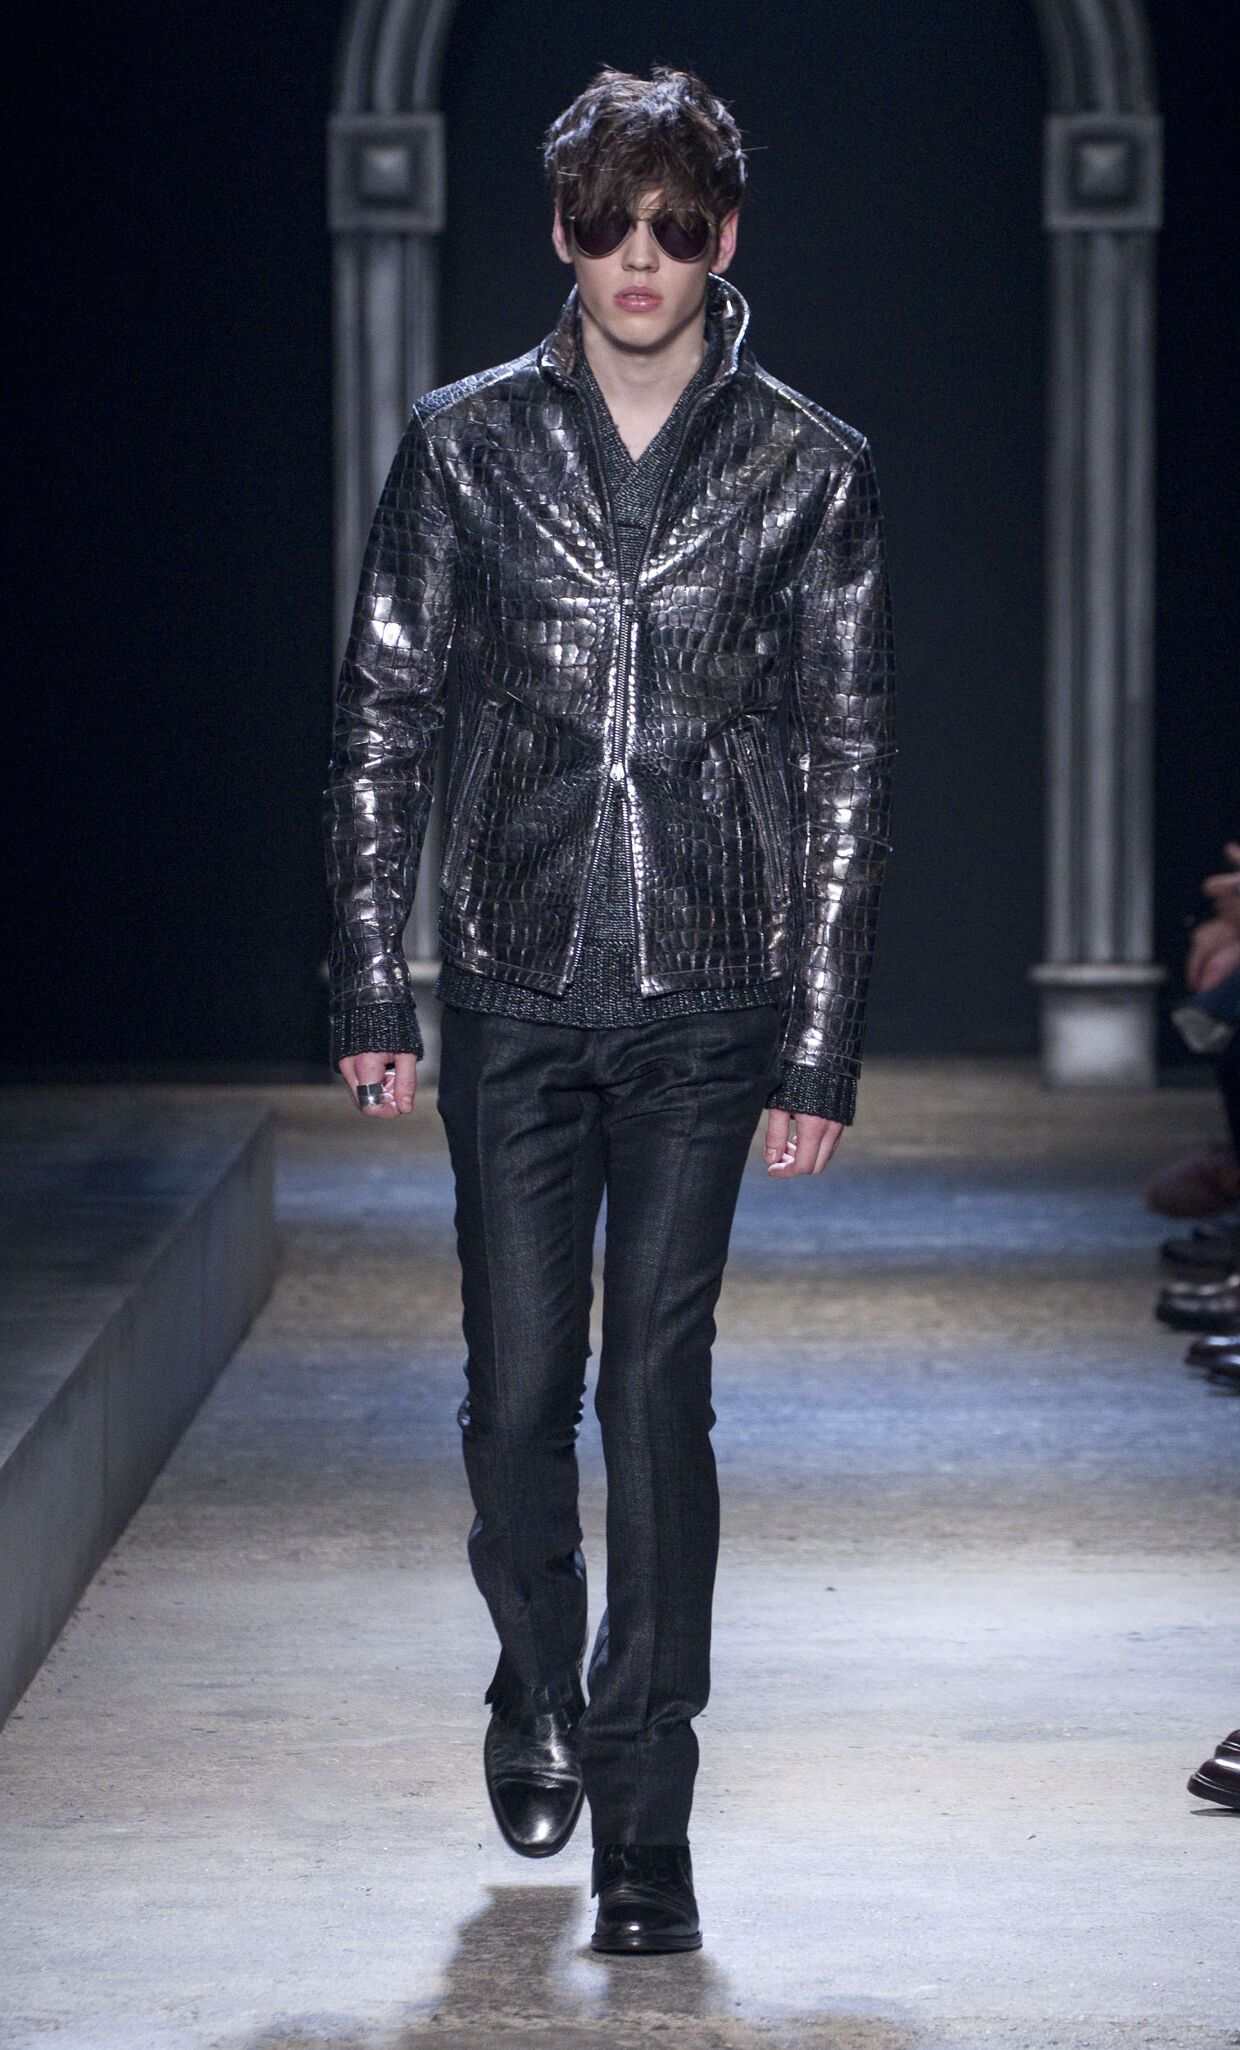 Winter John Varvatos Trends 2014 Man